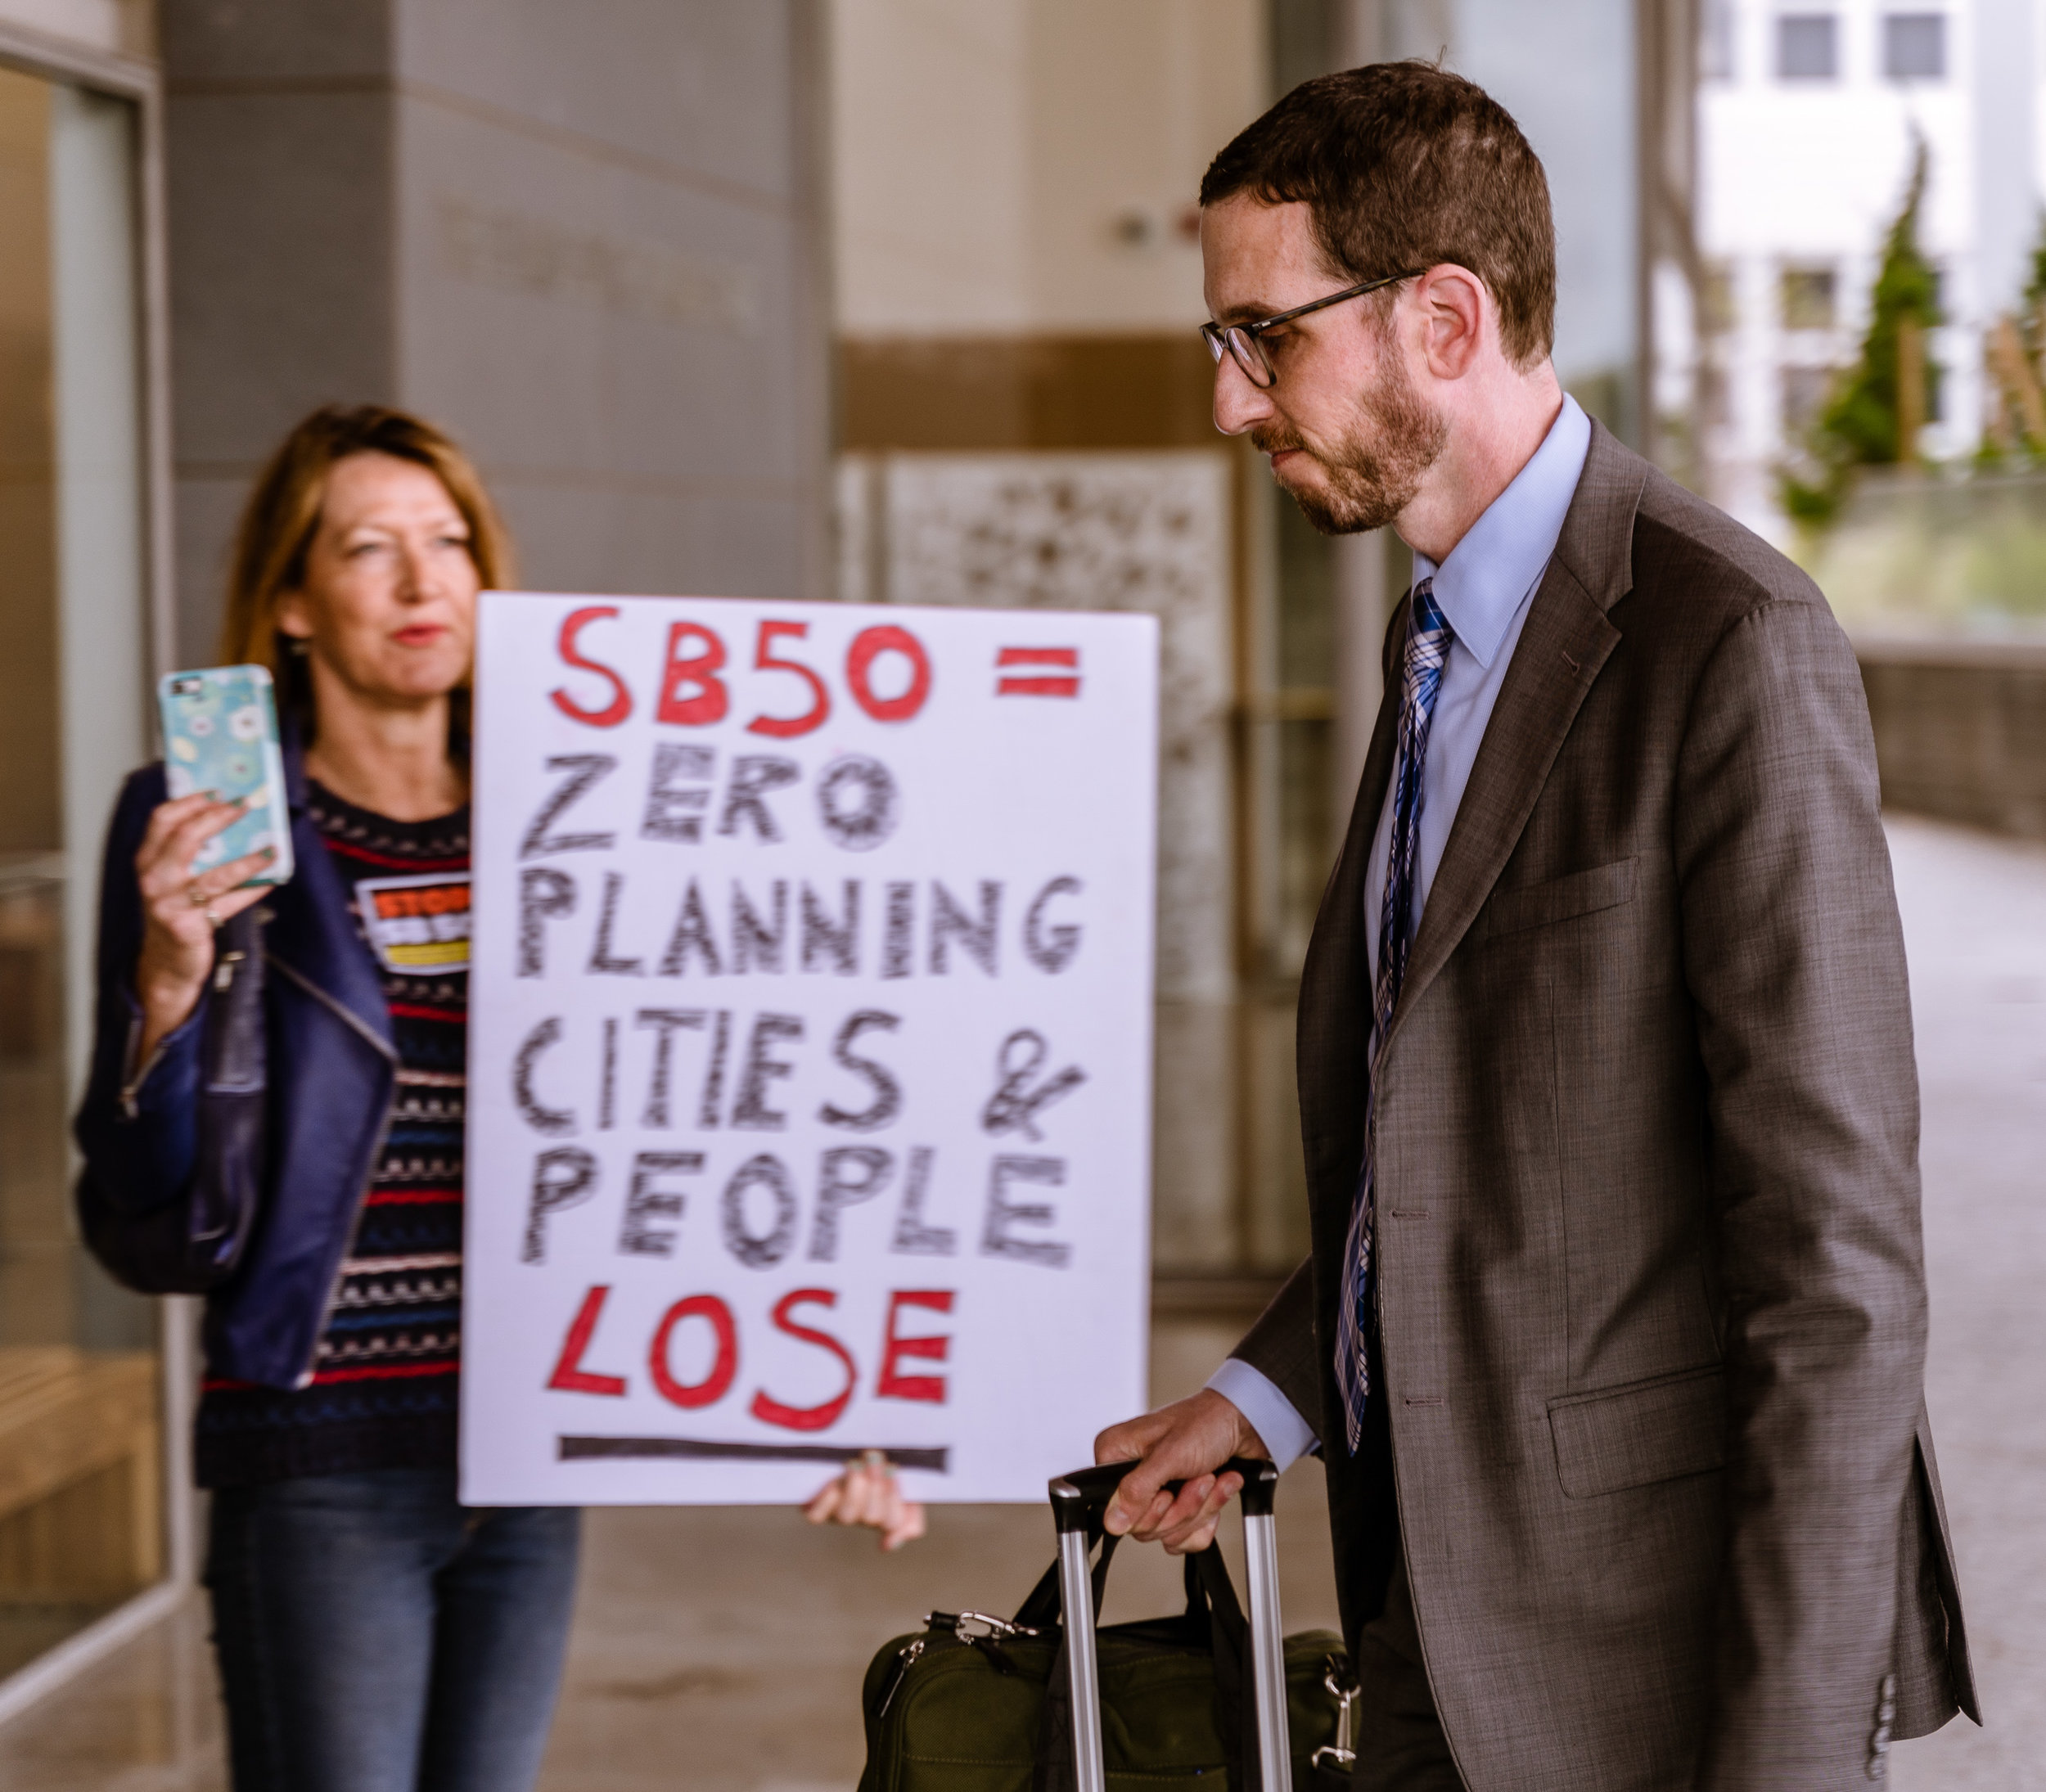 """Lesley O'Toole from Hollywood, by way of Hampshire, England, holds a sign opposing SB-50 and tries to engage with California State Senator Scott Weiner (SD11 – San Francisco), the author of SB-50, but Weiner does not acknowledge her presence as he walks swiftly into the SMC Broad Stage, on Thursday, May 9, 2019. As Weiner passes her, O'Toole adds """"and, you're late"""", although he actually arrived before SB-50 opponent Senator Ben Allen (SD26 – Santa Monica), O'Toole said she was attending tonight because, """"I want to try to save my neighborhood from destruction."""" The SMC Public Policy Institute is presenting its 8th Annual Spring Symposium, """"There Goes the Neighborhood, Part II: How might policy approaches prevent displacement in neighborhoods affected by gentrification?"""" from May 4-9. Tonight's final event in the series is """"Where Goes the Road to Solving California's Housing Crisis? A Keynote Discussion with Legislative Leaders."""" The panel includes California state legislators Senator Ben Allen (SD26 – Santa Monica) and Senator Scott Weiner (SD11 – San Francisco), author of SB 50 which proposes bold approaches to California's housing issues, and Santa Monica Mayor Gleam Davis, a former Co-Chair of Santa Monicans for Renters' Rights and leading advocate for Santa Monica's innovative policy solutions and funding for affordable housing."""" (Glenn Zucman/The Corsair)"""